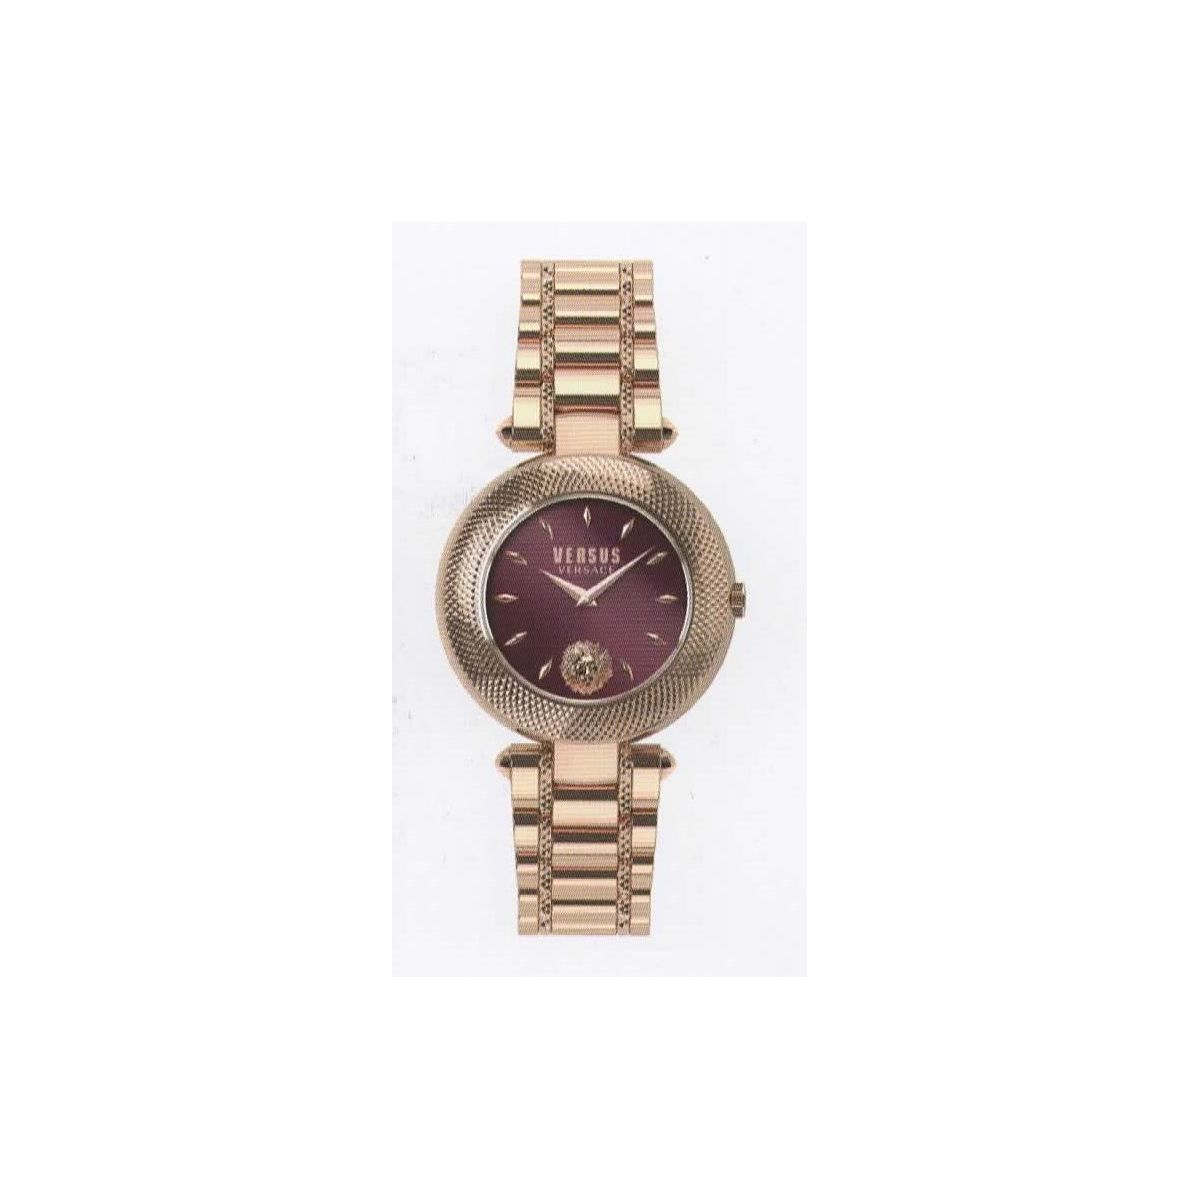 Orologio Donna Versus by Versace Brick Lane - S71070016